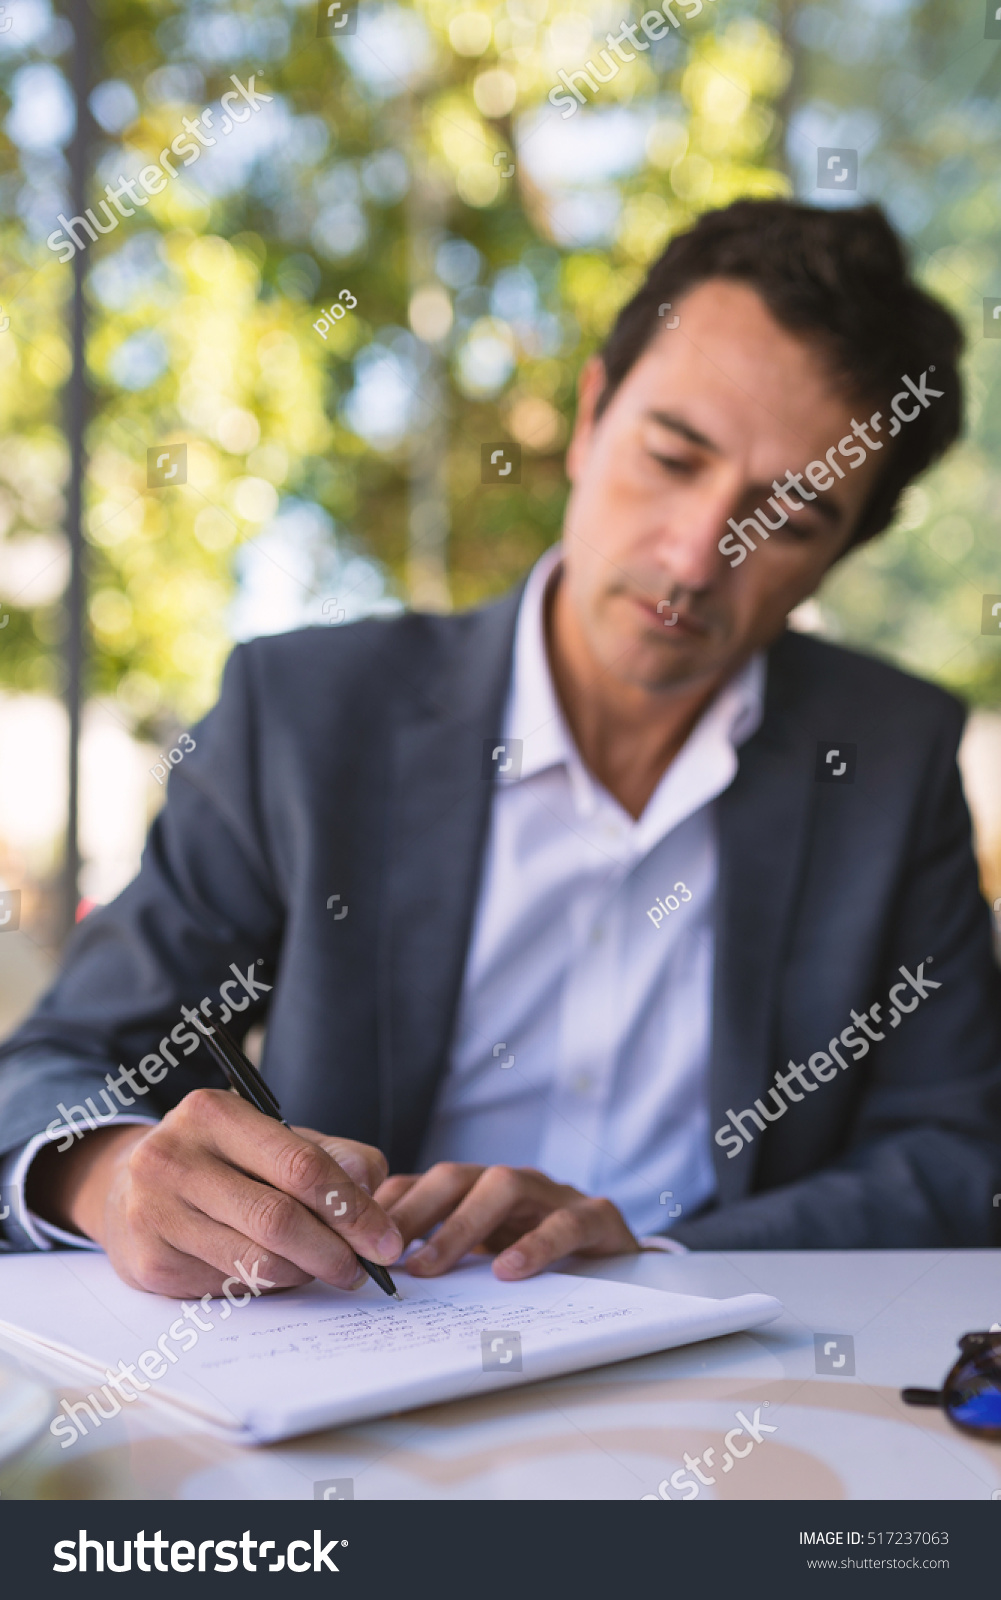 concentrate middle age businessman portrait writing stock photo concentrate middle age businessman portrait writing an essay outdoors in rome focus on